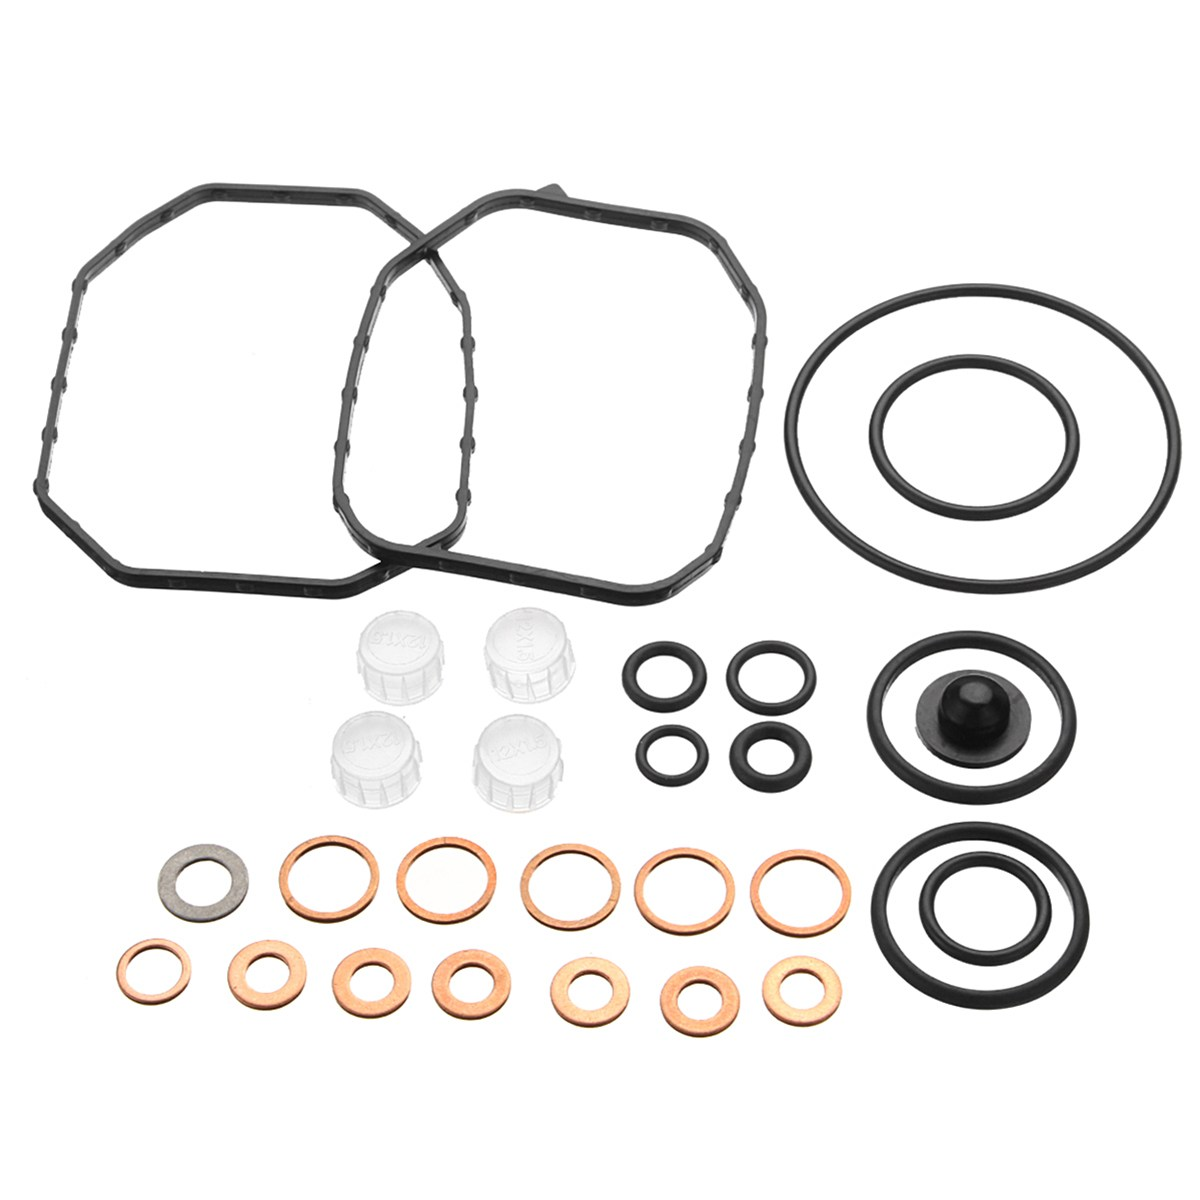 Injection Pump Repair Seal Kit For Vw Beetle Golf Jetta For Audi 1 9 Tdi In Seals